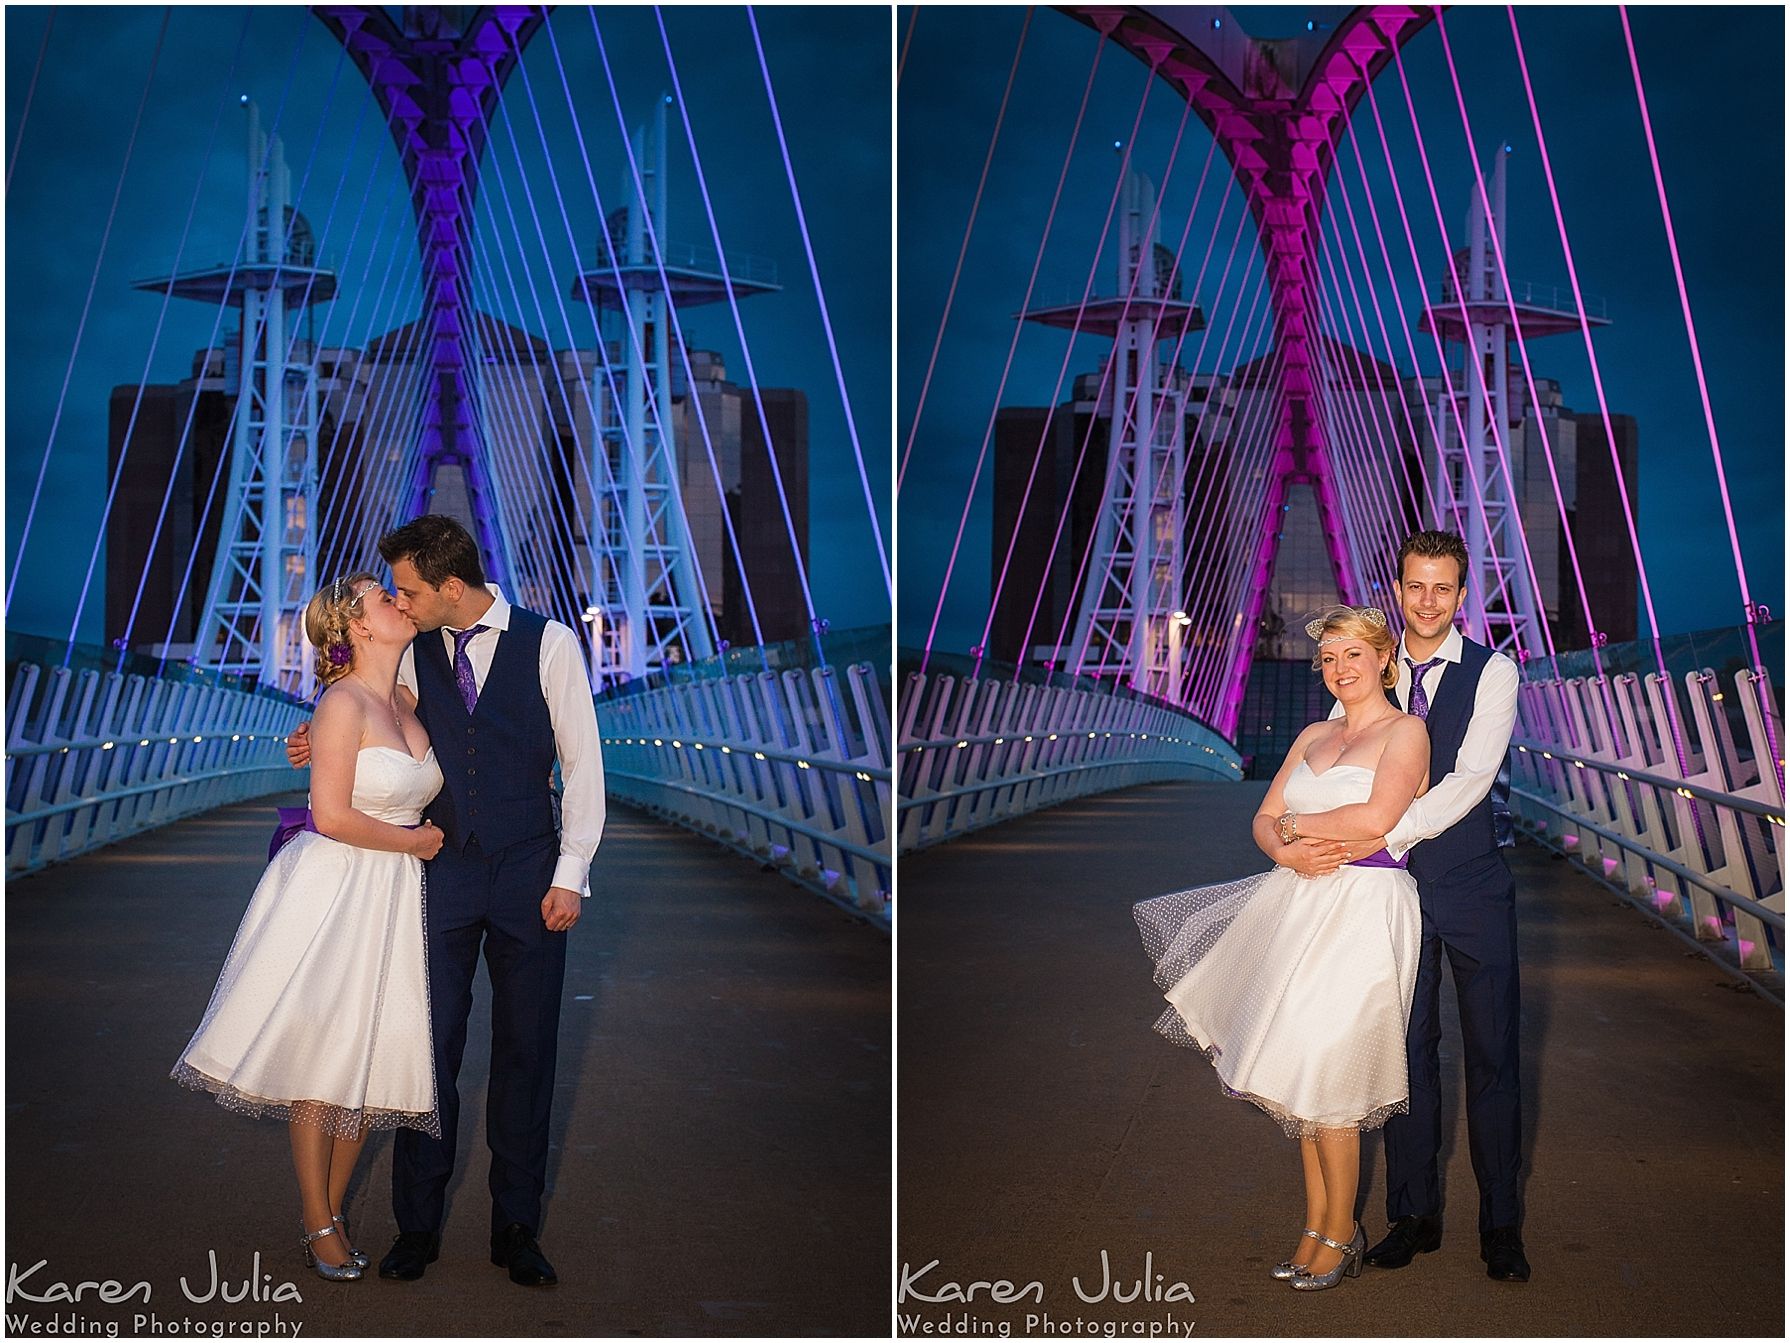 bride and groom portrait at night on bridge next to lowry theatre